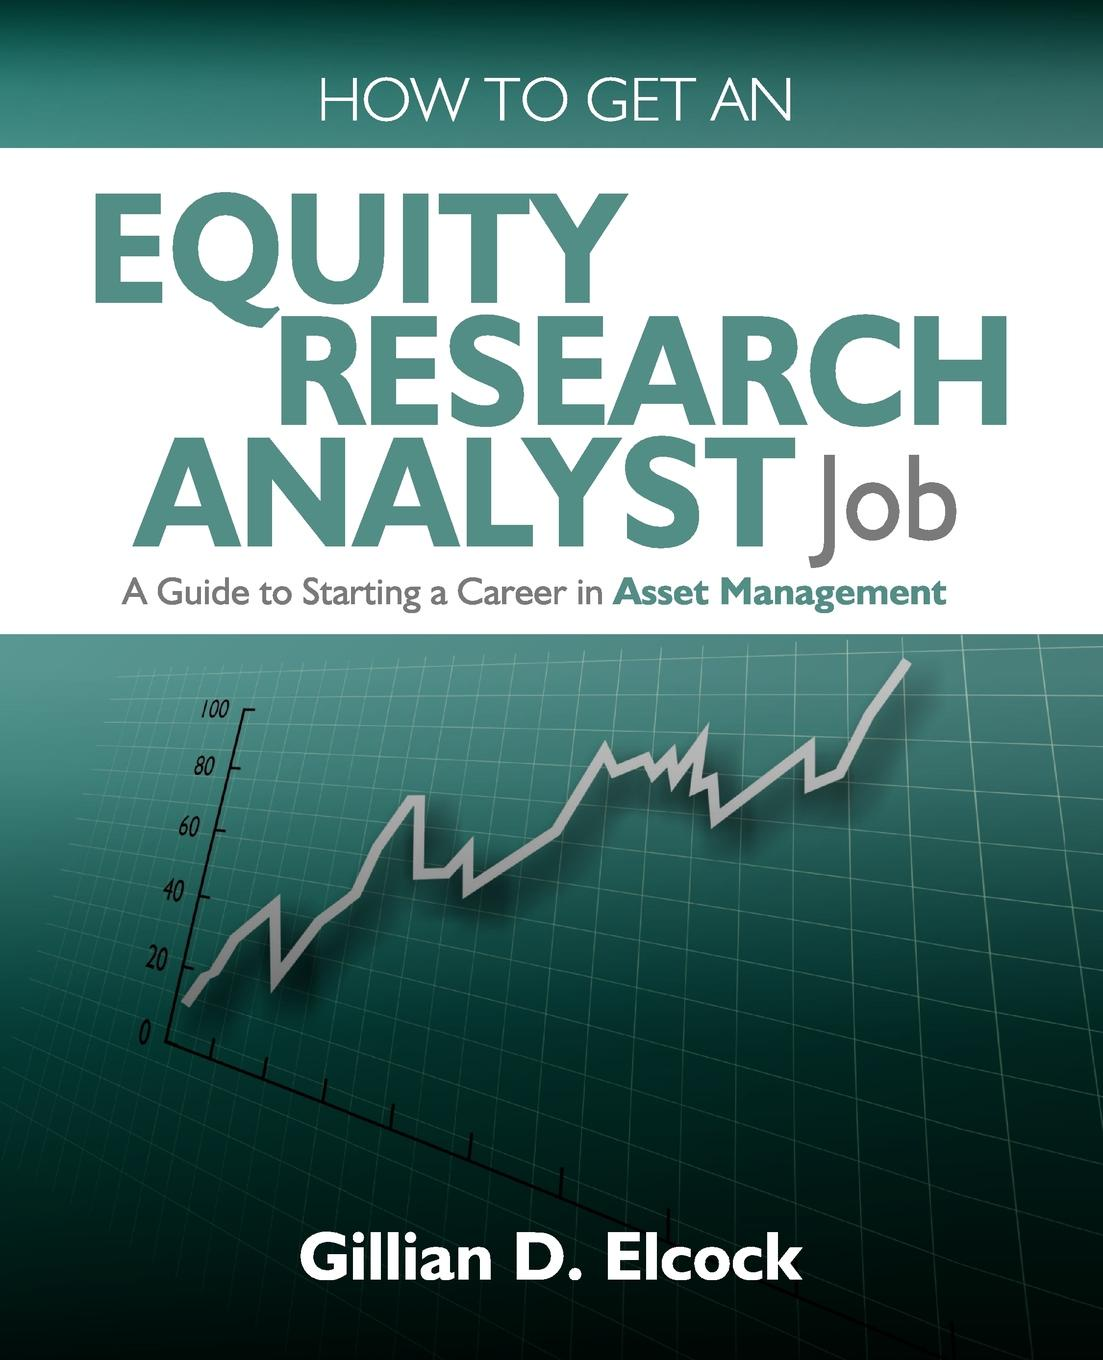 Gillian Elcock How to Get an Equity Research Analyst Job 4pcs lot xc95144 15pq100c xc95144 good quality hot sell free shipping buy it direct